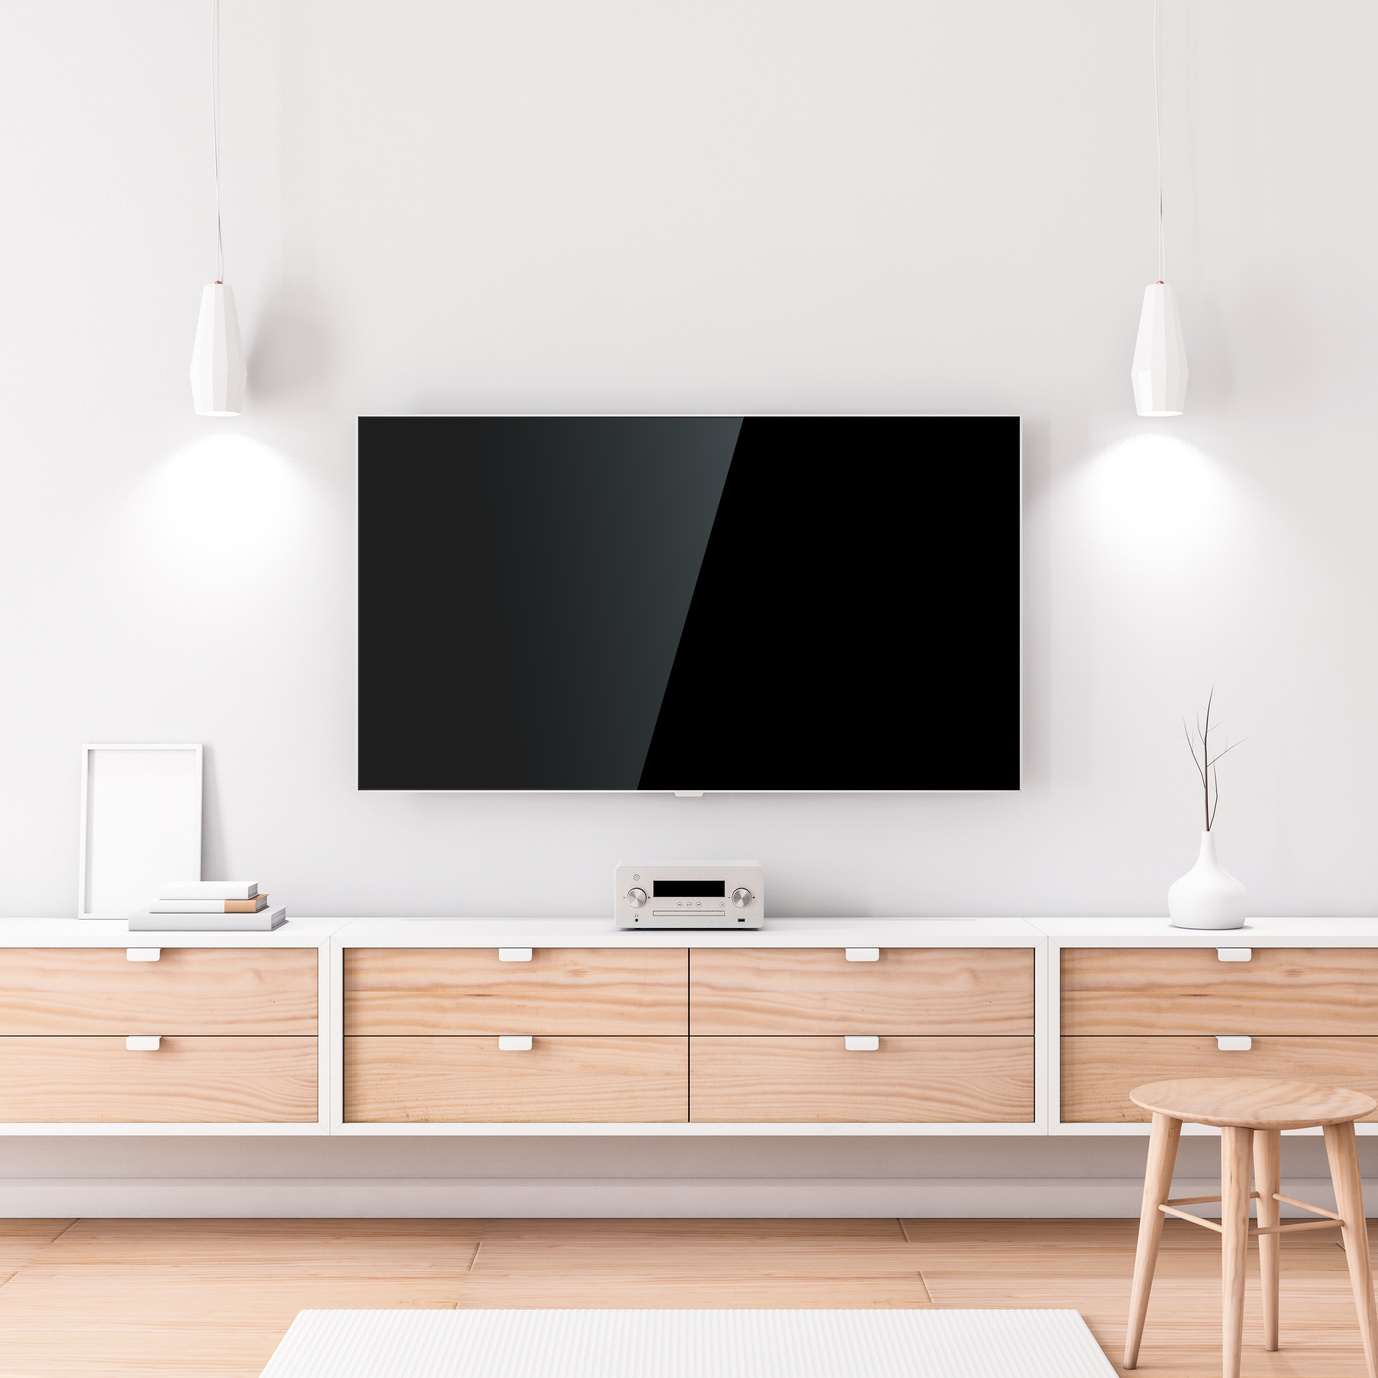 Smart Tv Mockup with black screen hanging on the white wall in modern living room. 3d rendering